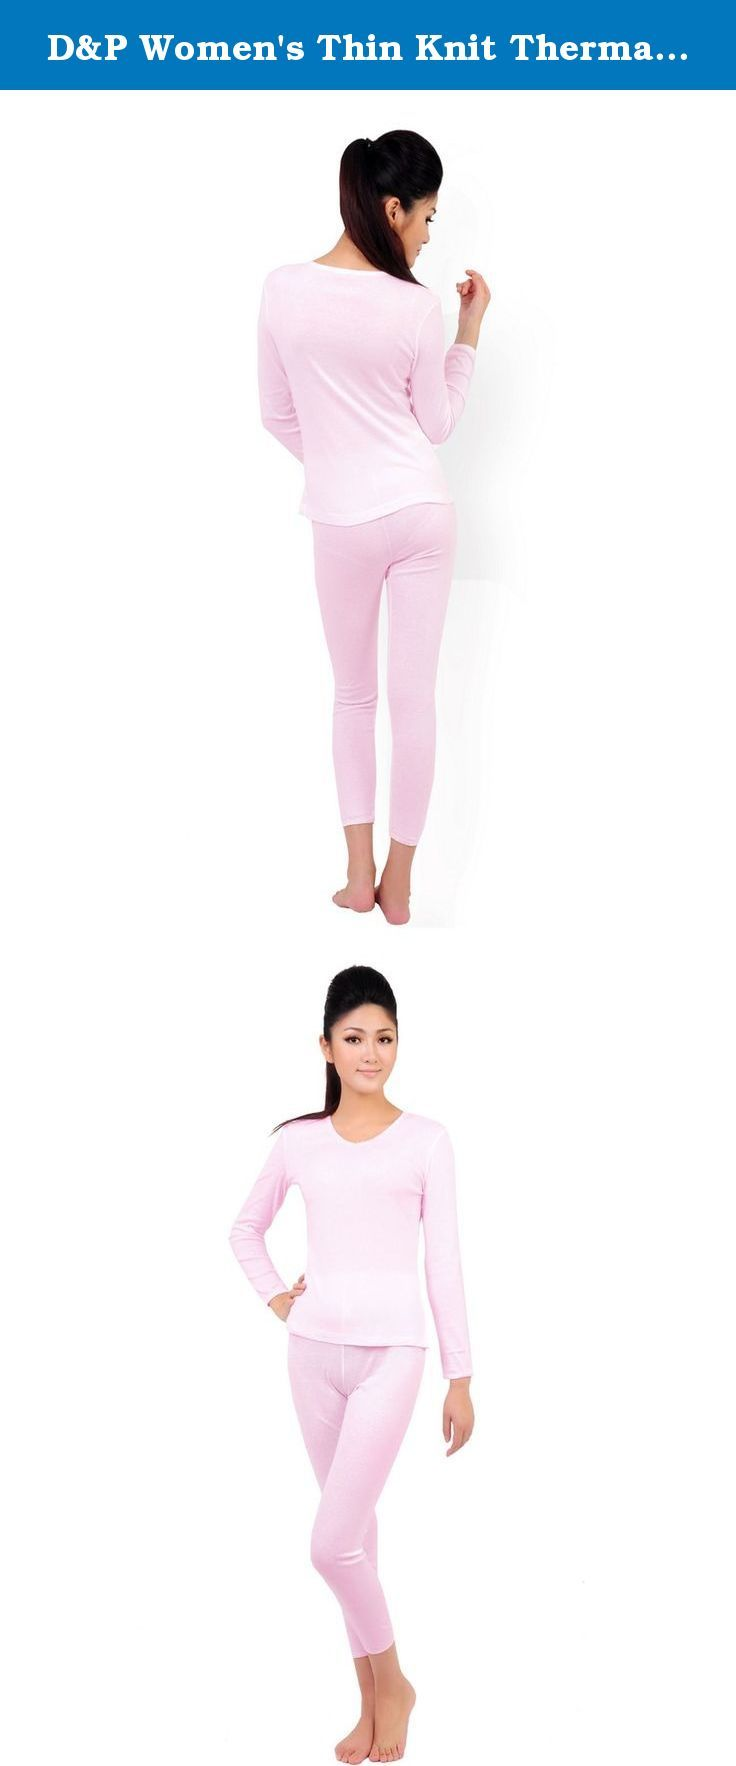 D&P Women's Thin Knit Thermal Underwear Top and Bottom Set Pink (M, Pink). Women's thermal underwear 2 piece set.Can not be ignored comfort and warmth, meticulous care of the winter skin, essential single product, suitable for adult female. Size Chart X-Small (Shirt : Length 53 cm, Chest 72 cm/ Pants Length 84 cm, Waist 58 cm) Small (Shirt : Length 55 cm, Chest 76 cm/ Pants Length 86 cm, Waist 62cm) Medium (Shirt : Length 57 cm, Chest 80 cm/ Pants Length 88 cm, Waist 66 cm) Large (Shirt :...